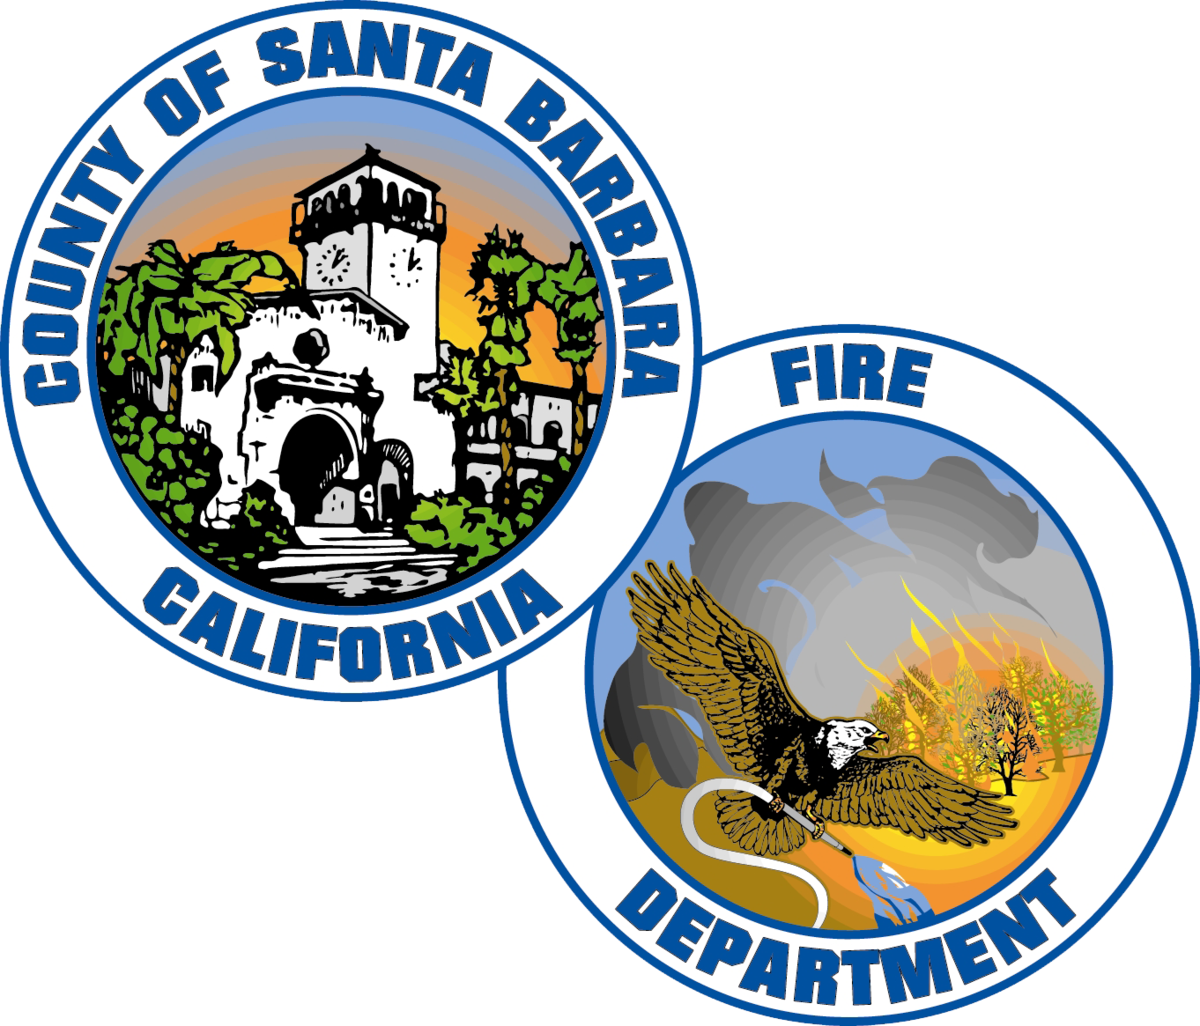 Santa Barbara County Fire Department logo